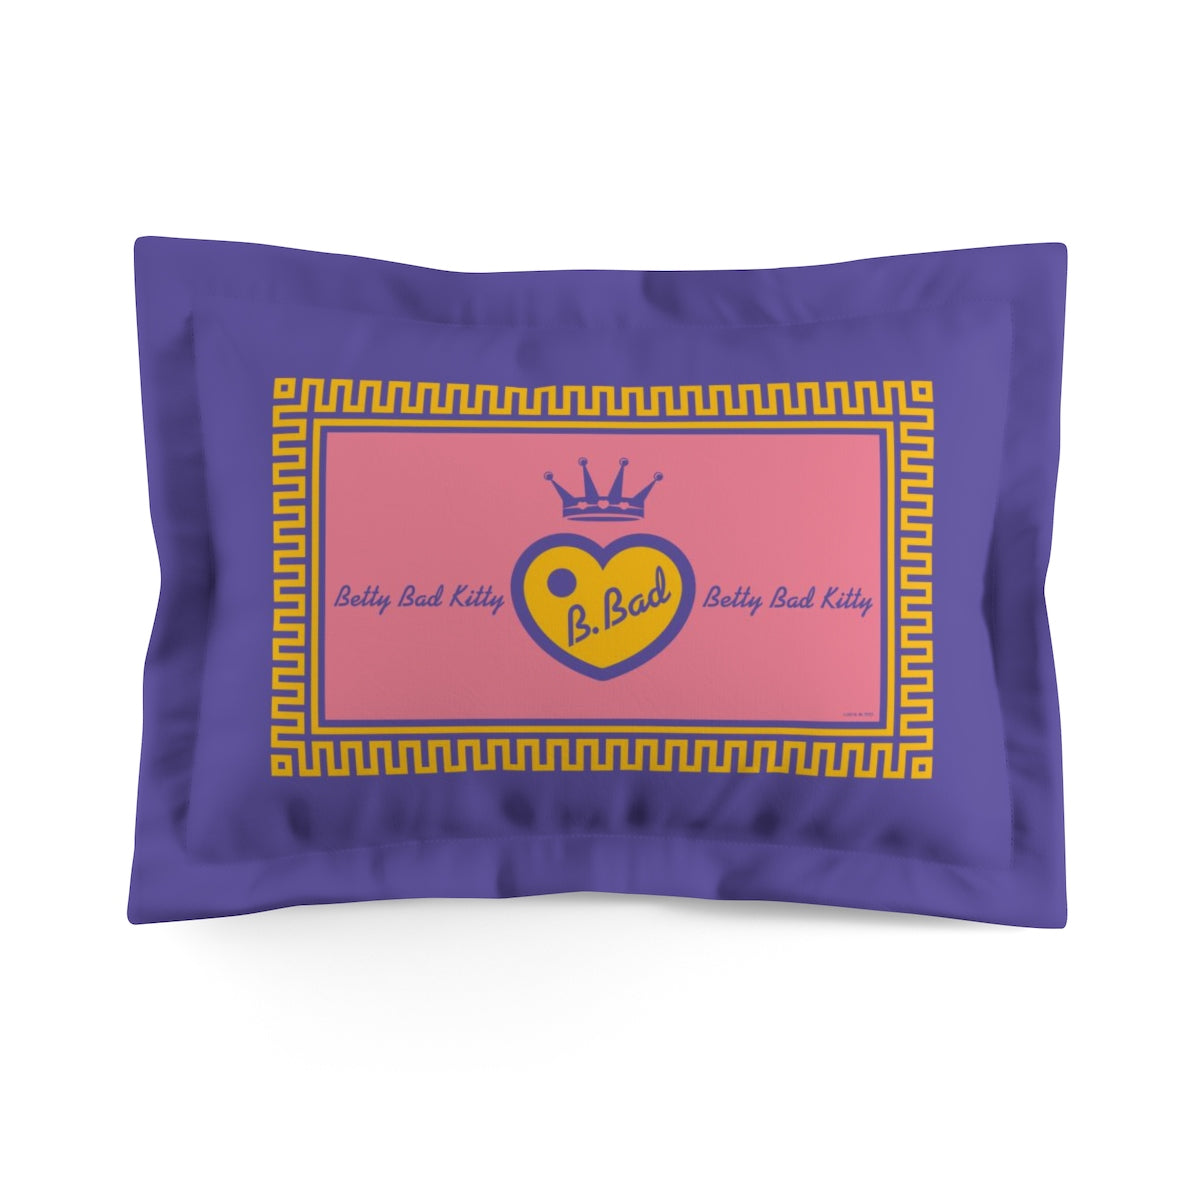 Betty Bad Kitty . Pop IV . Logo . Pillow Sham